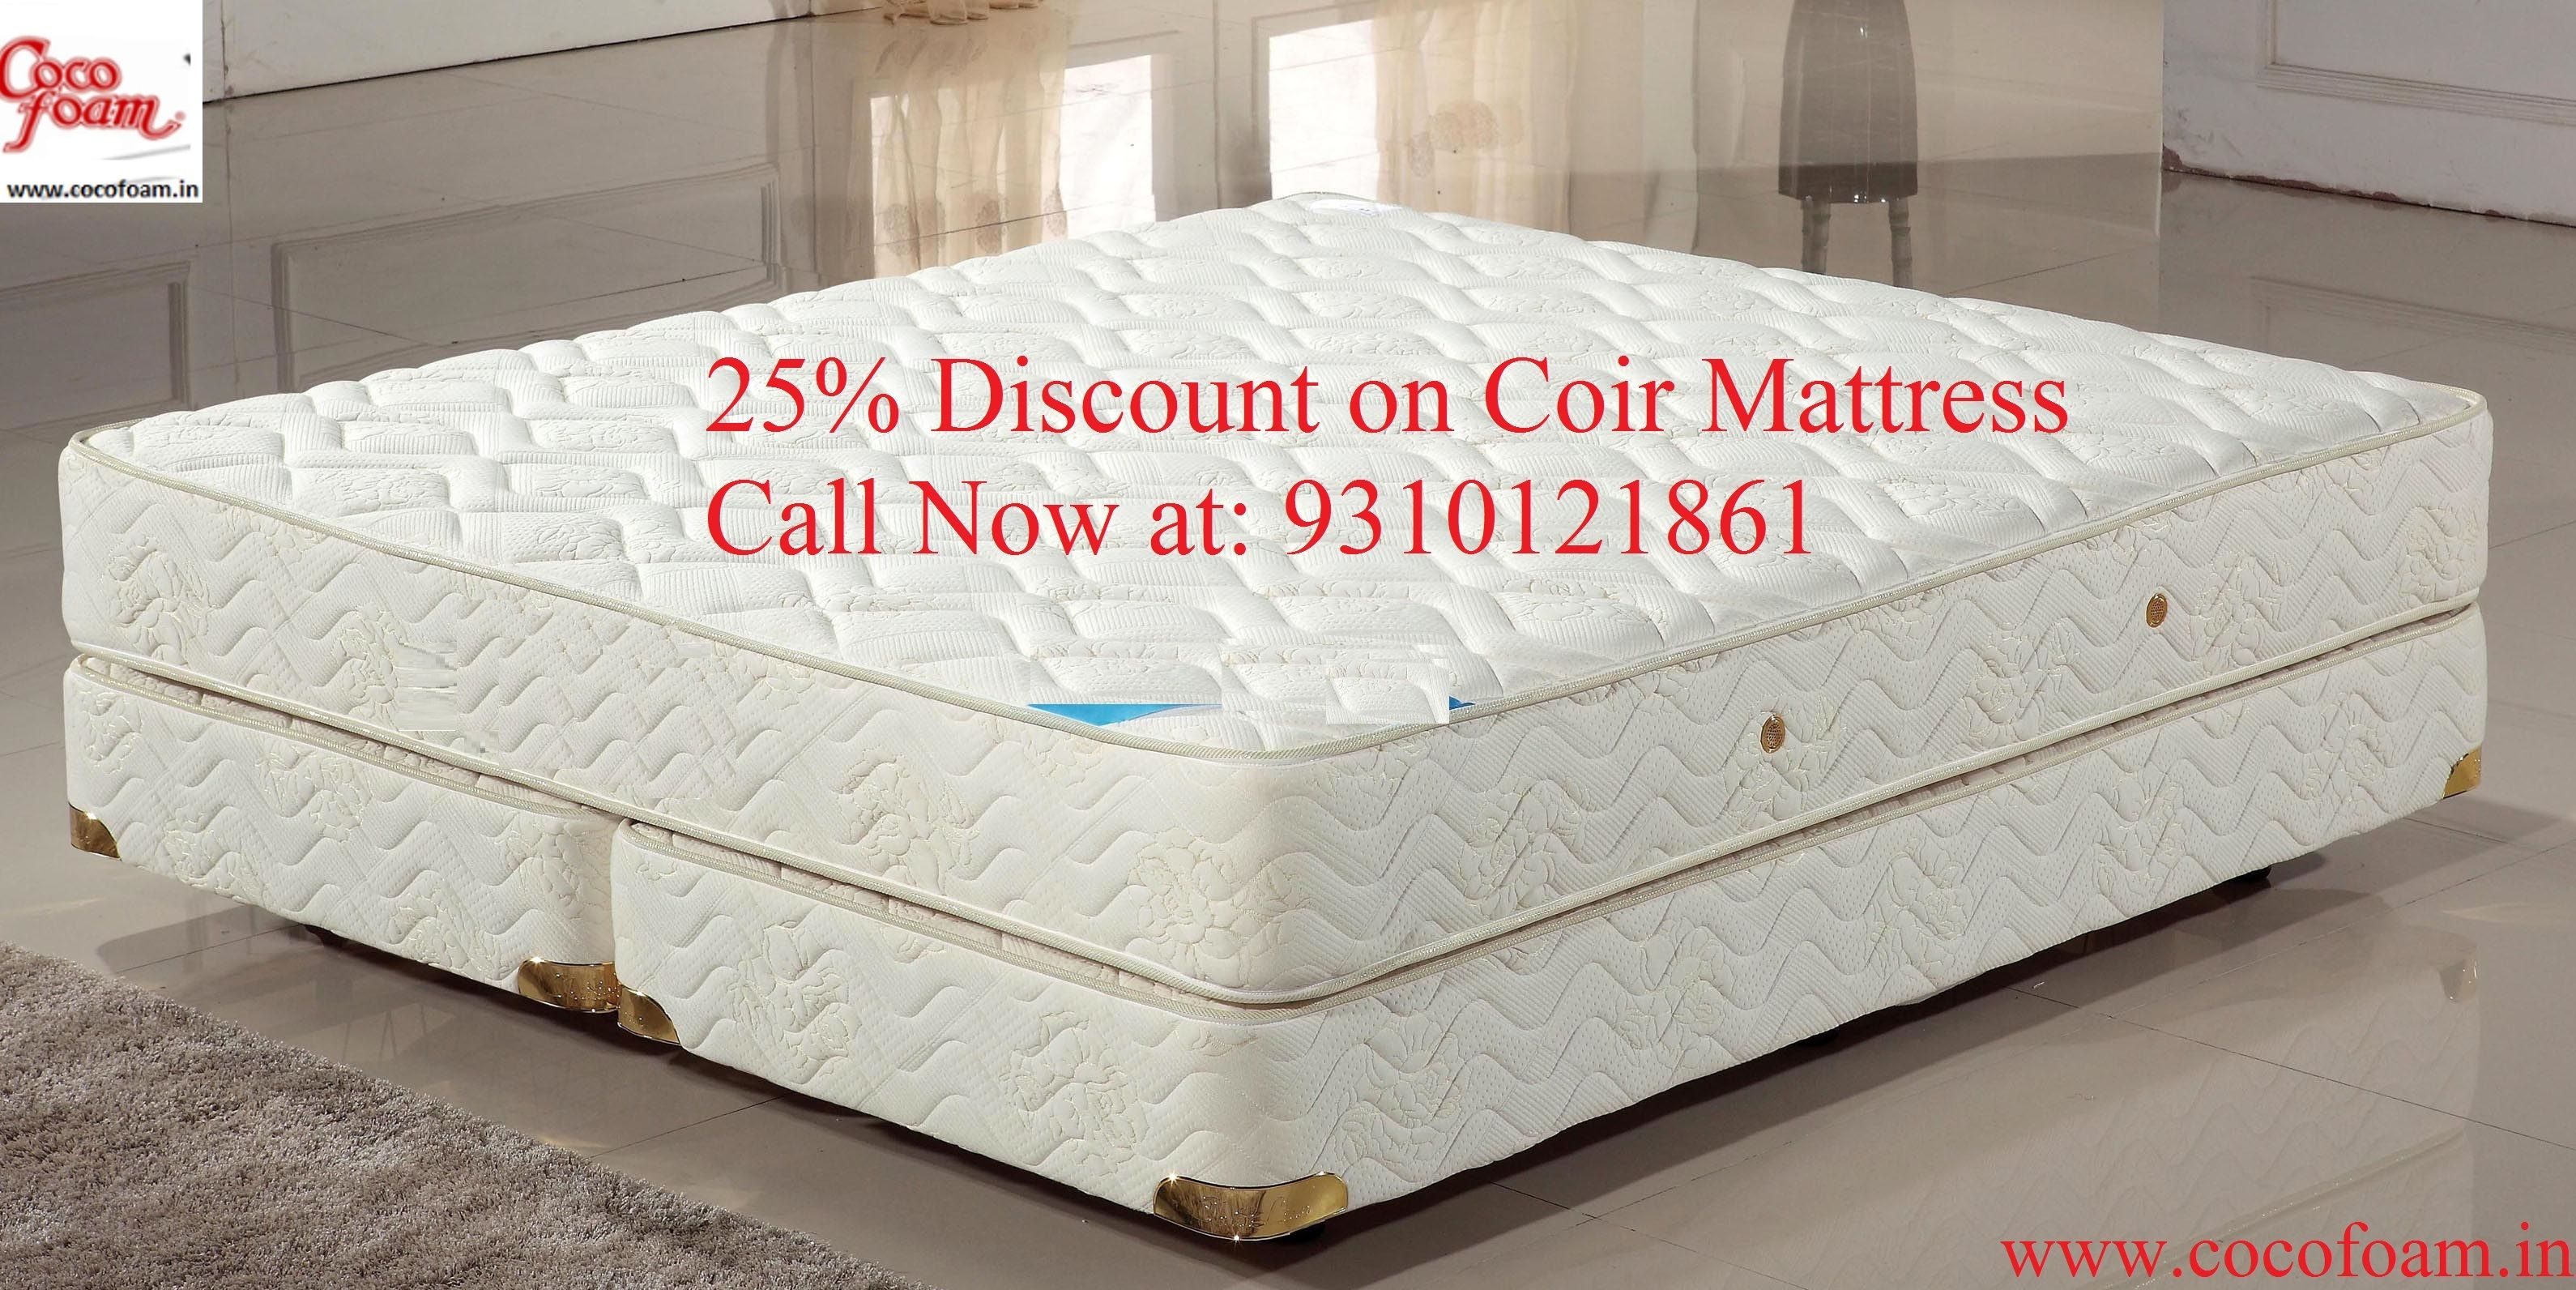 How can I know if I need a new mattress? Mattresses are the most utilized